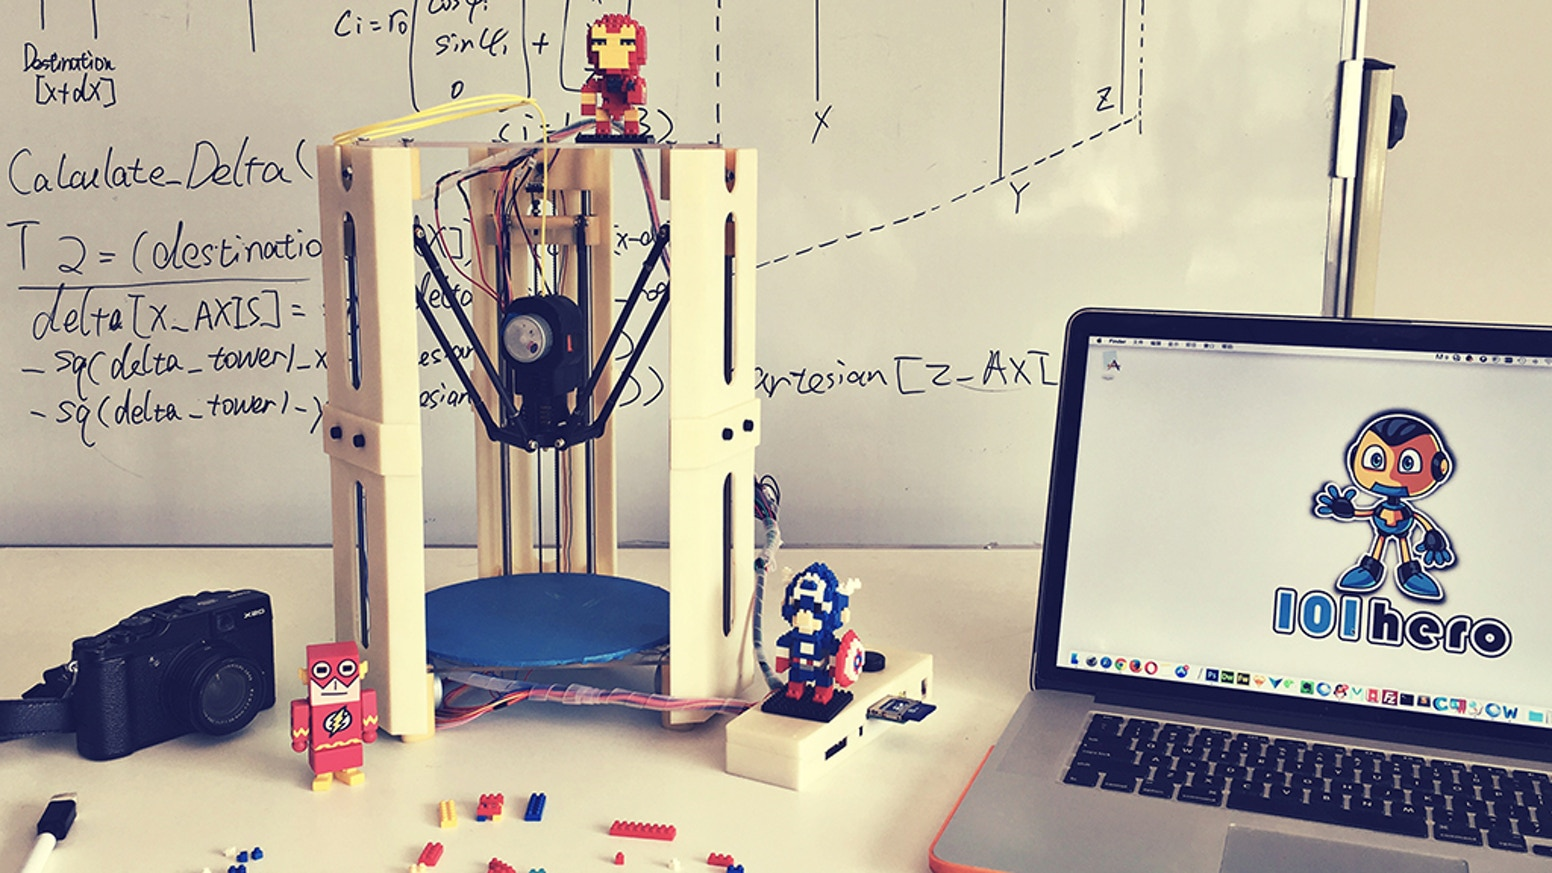 3D Printing for work, home and play. 101Hero gives everyone simple, affordable, and dependable 3D printing